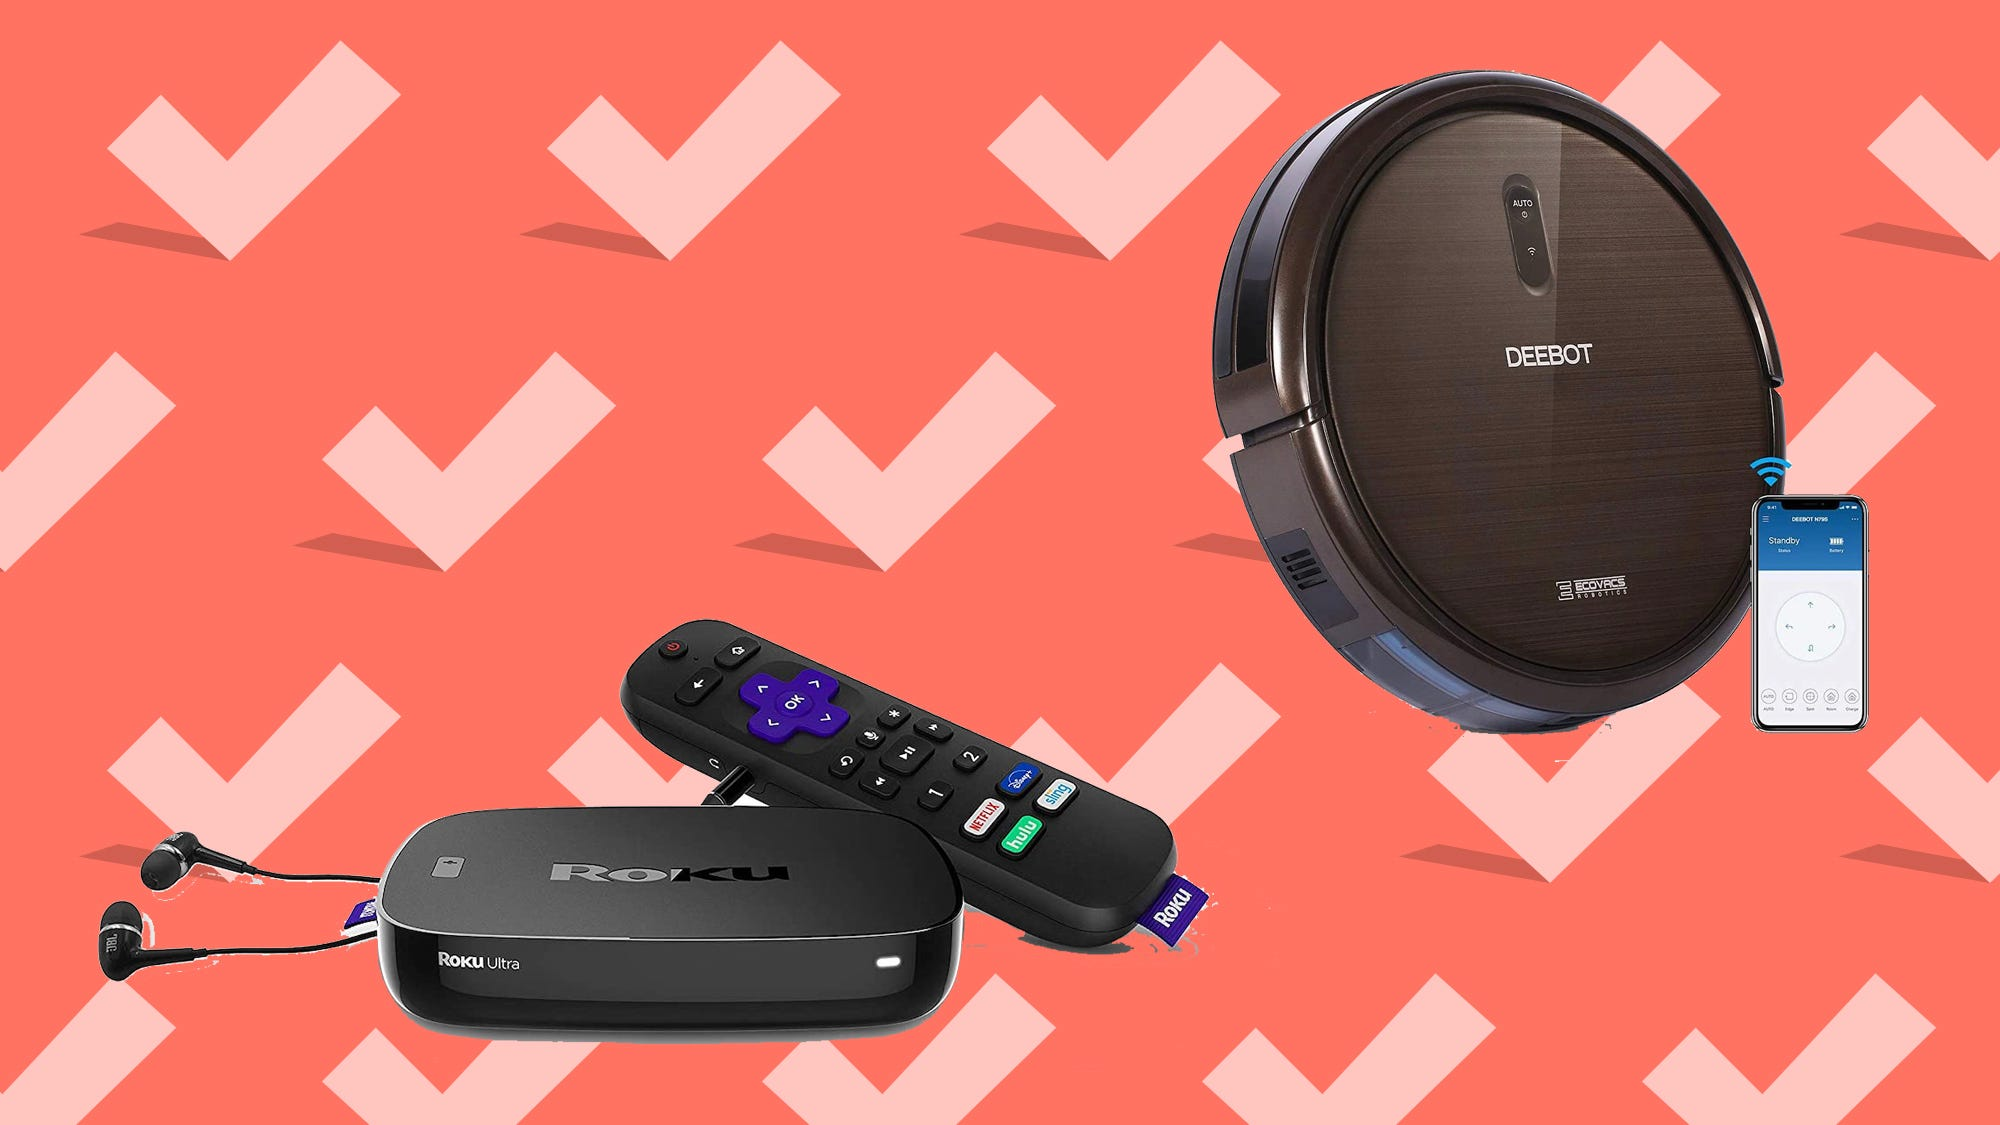 The 5 best early Prime Day deals you can get this weekend